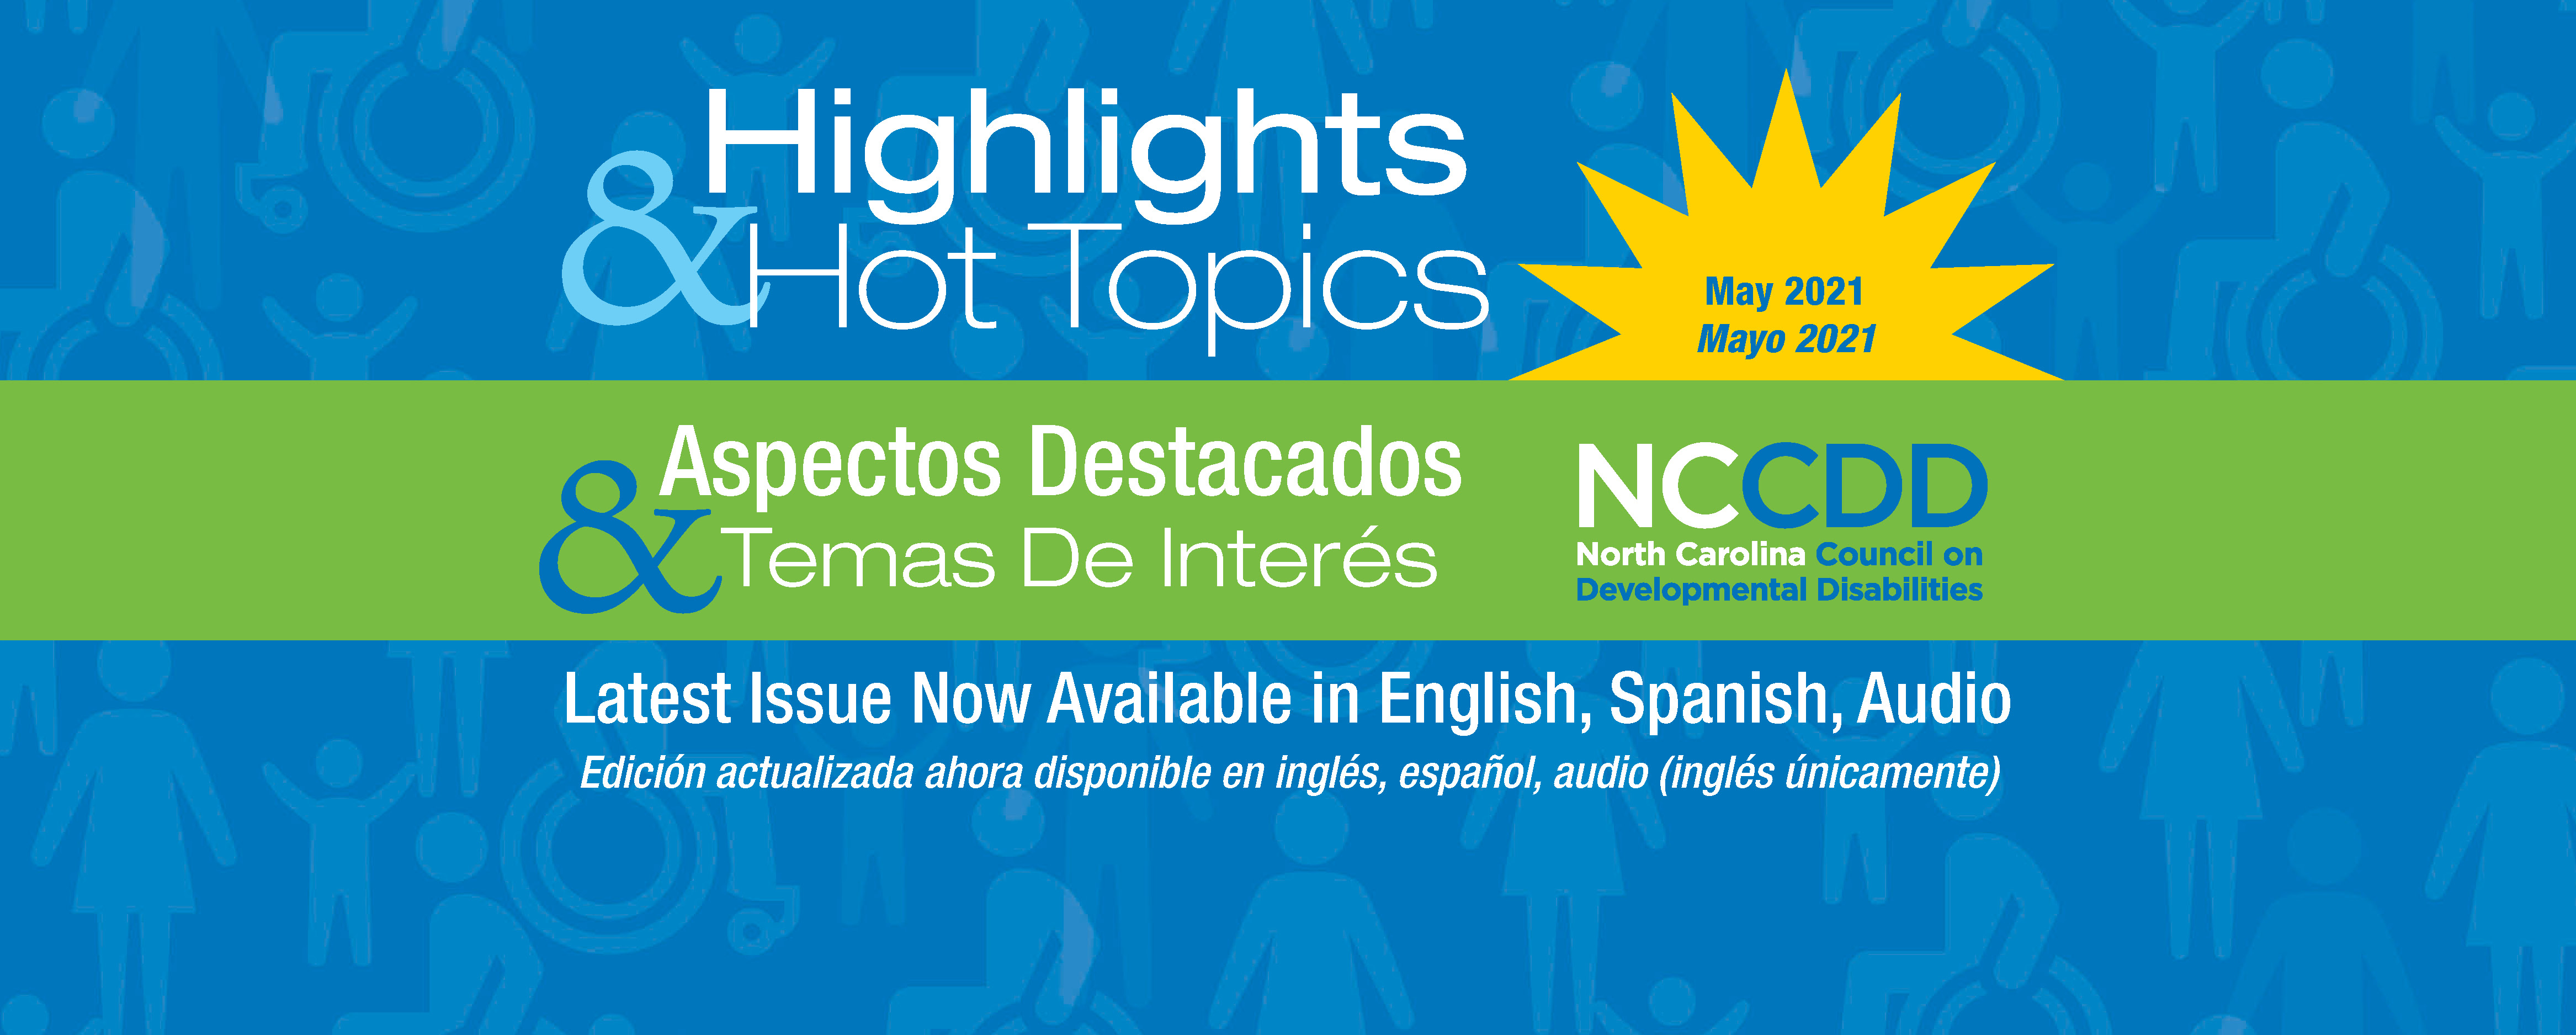 Highlights & Hot Topics! Latest Issue Now Available in English, Audio, Spanish version coming soon!